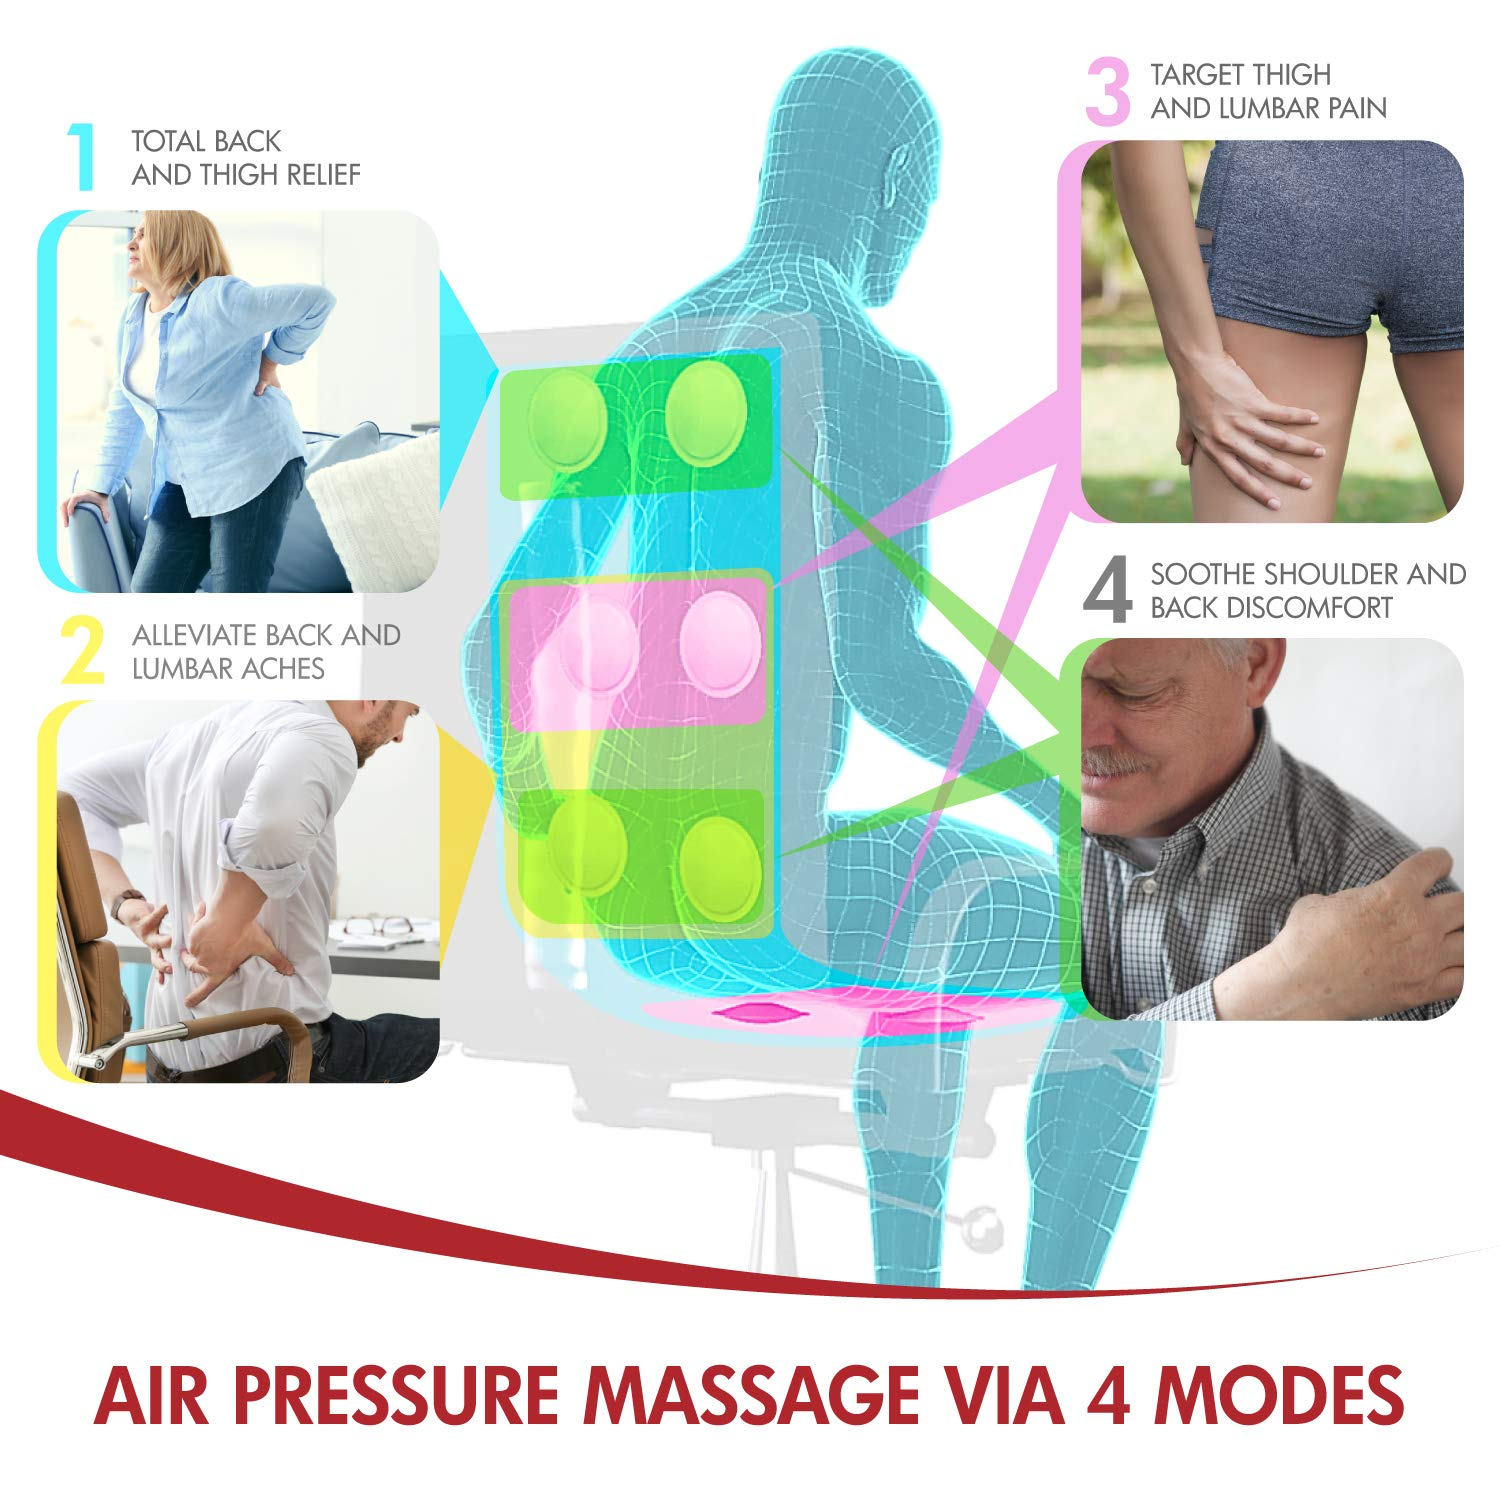 Viotek Air Comfort Massage Cushion | Shiatsu Relief for Gaming or Office Chair, Car Seat | 4-Point Targeting for Shoulders, Back and Leg Massager for Circulation by Viotek (Image #4)